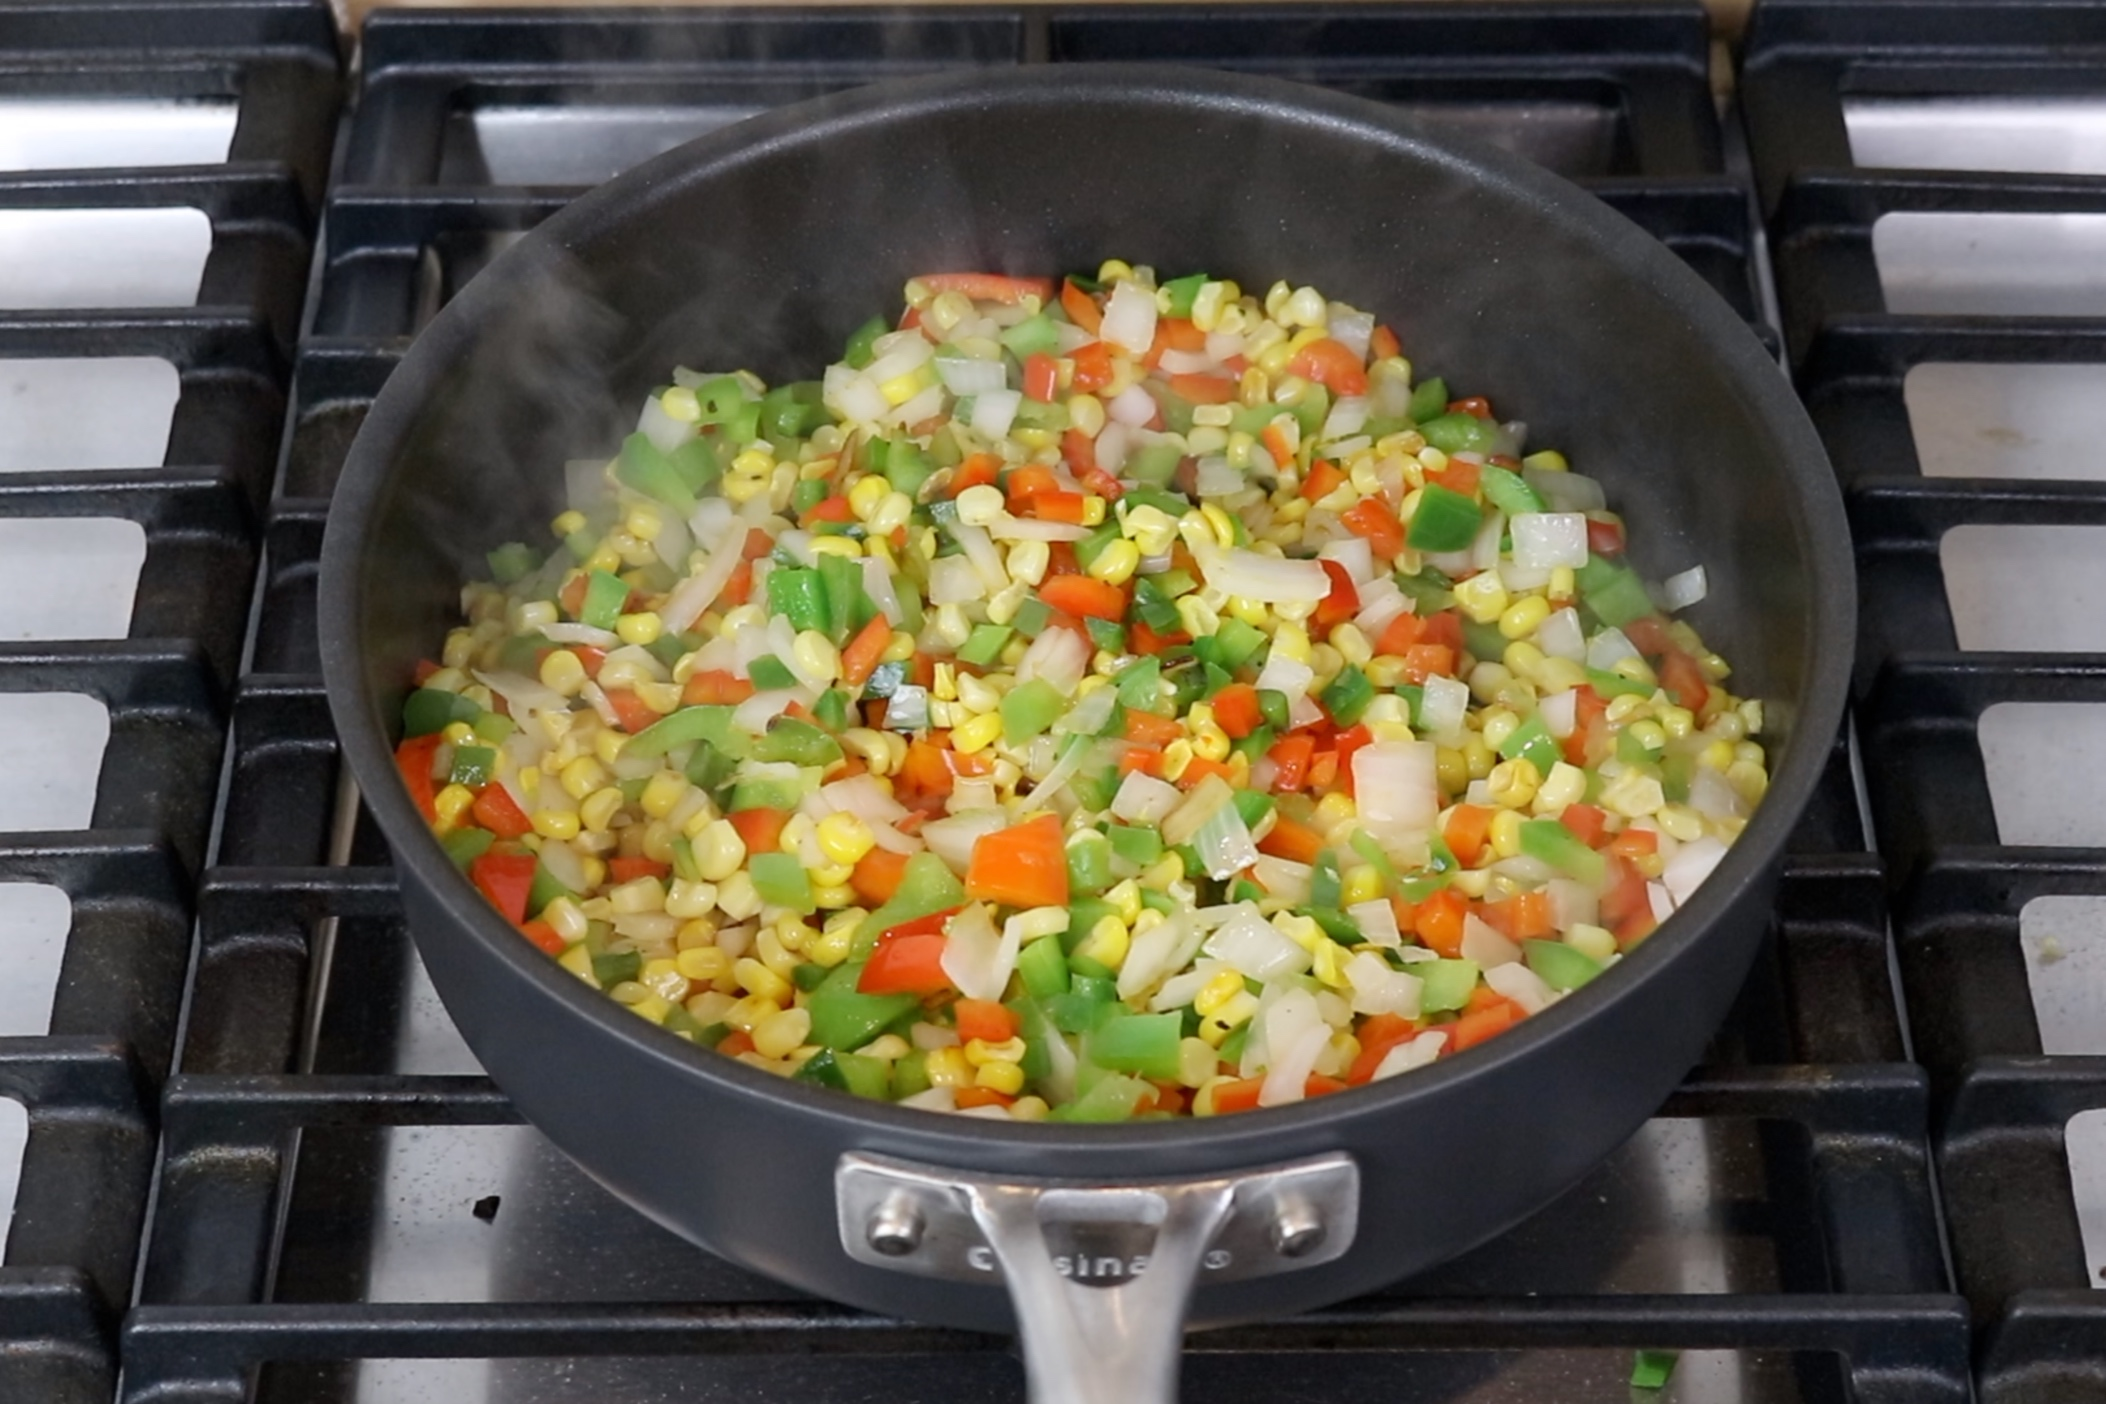 7. Cook the veggies for 5 minutes stirring occasionally. -